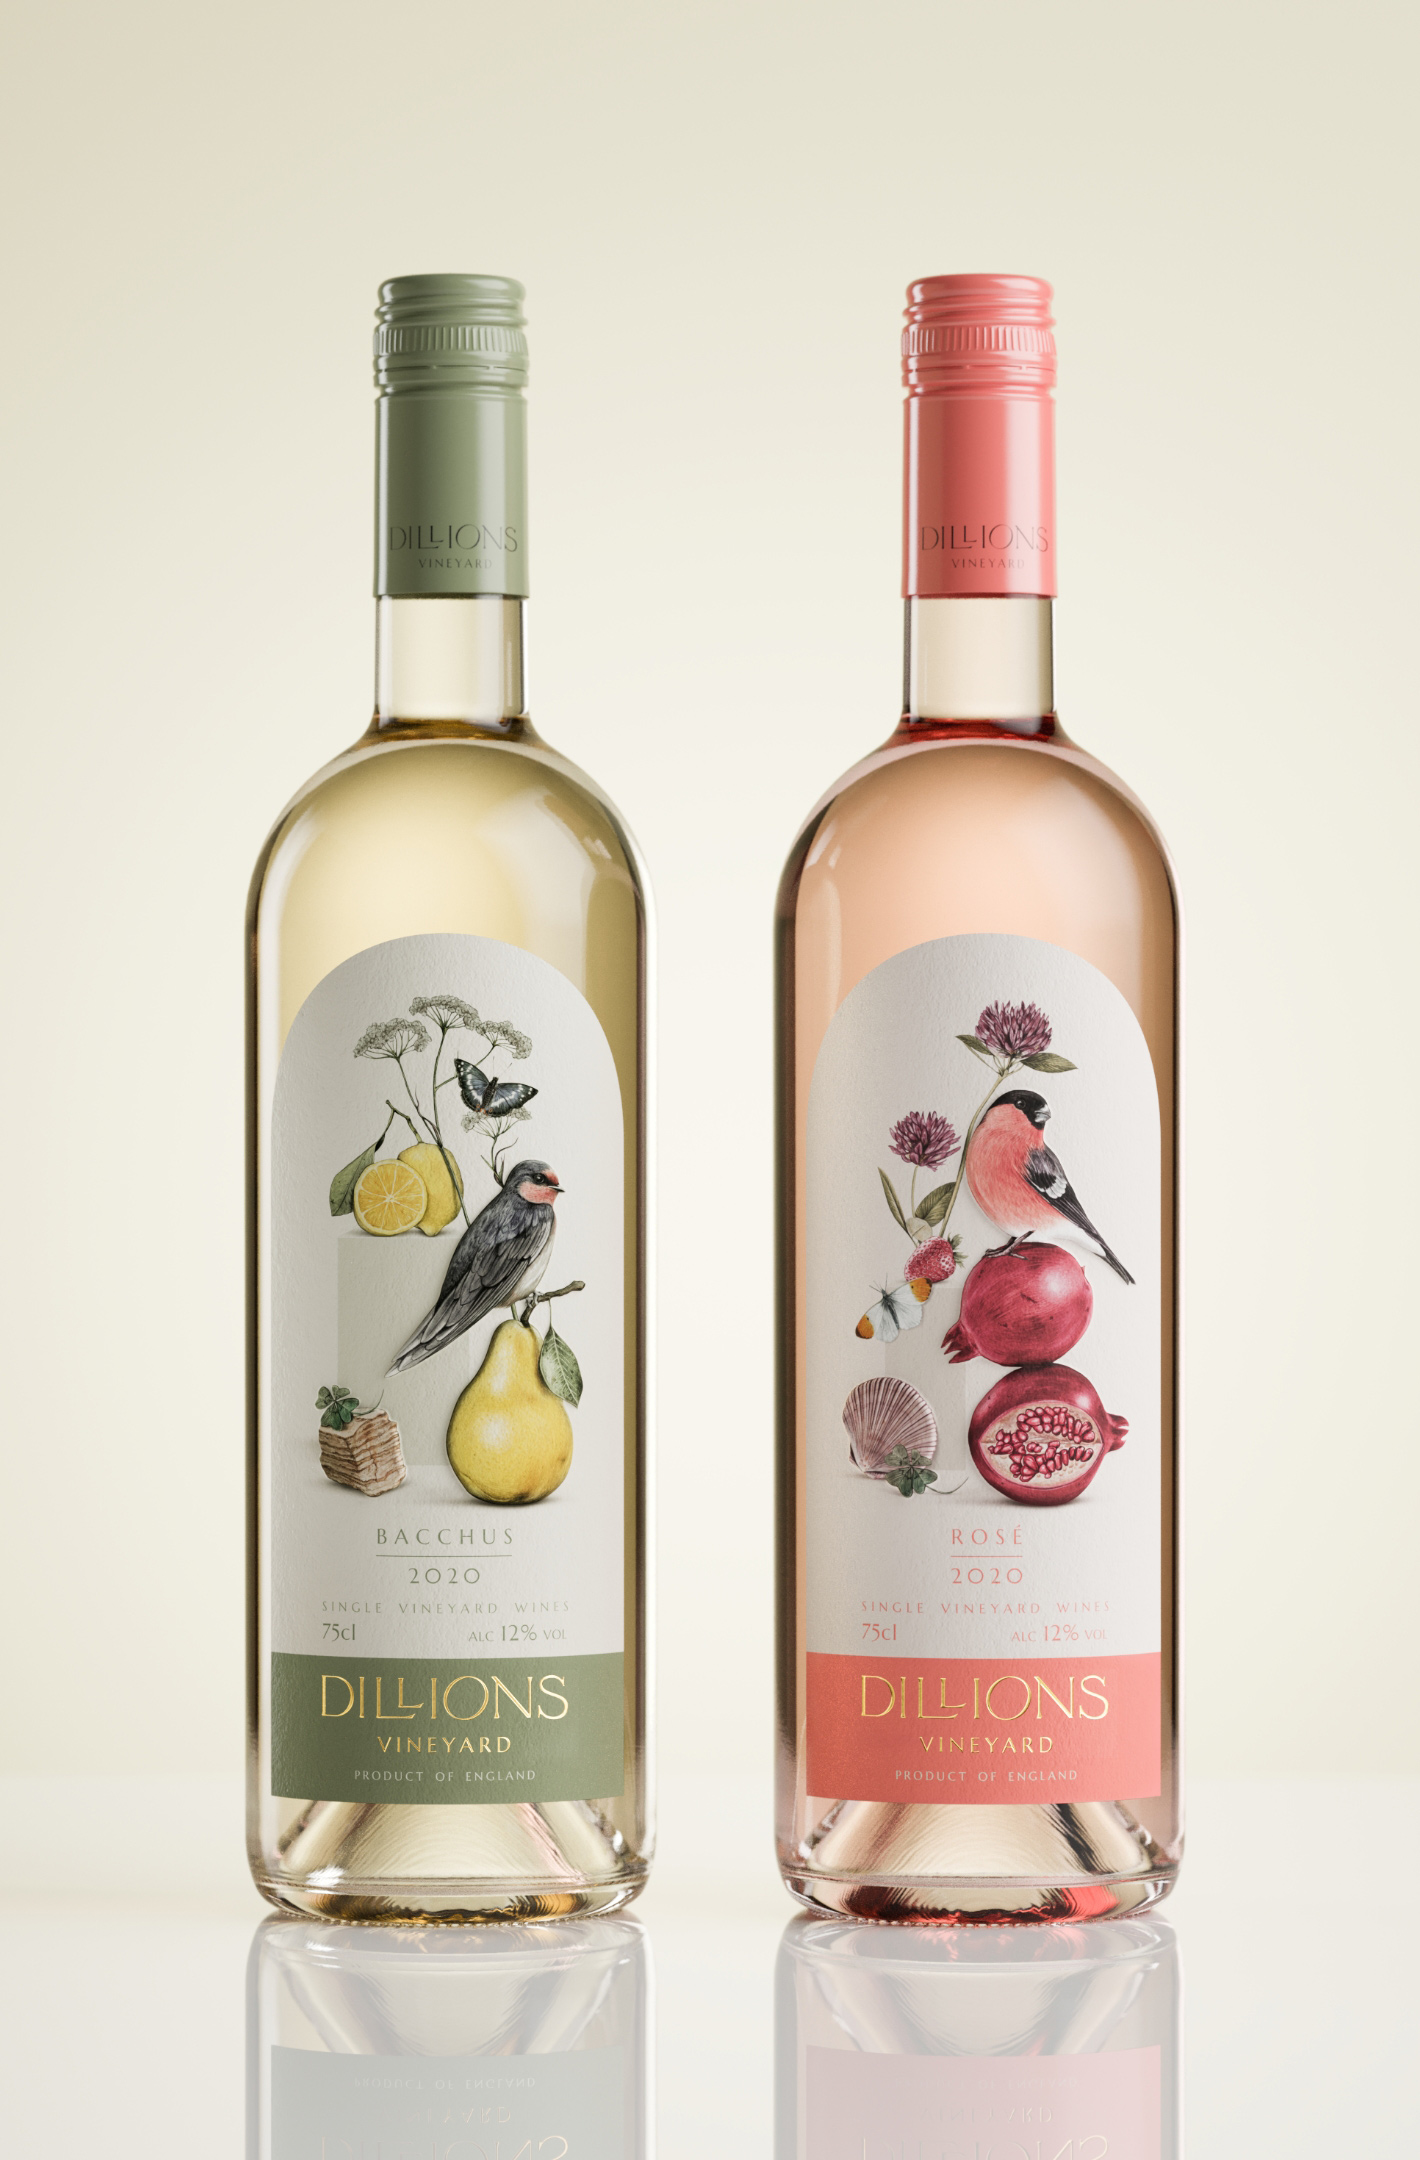 Dillion's white and rose wine labels